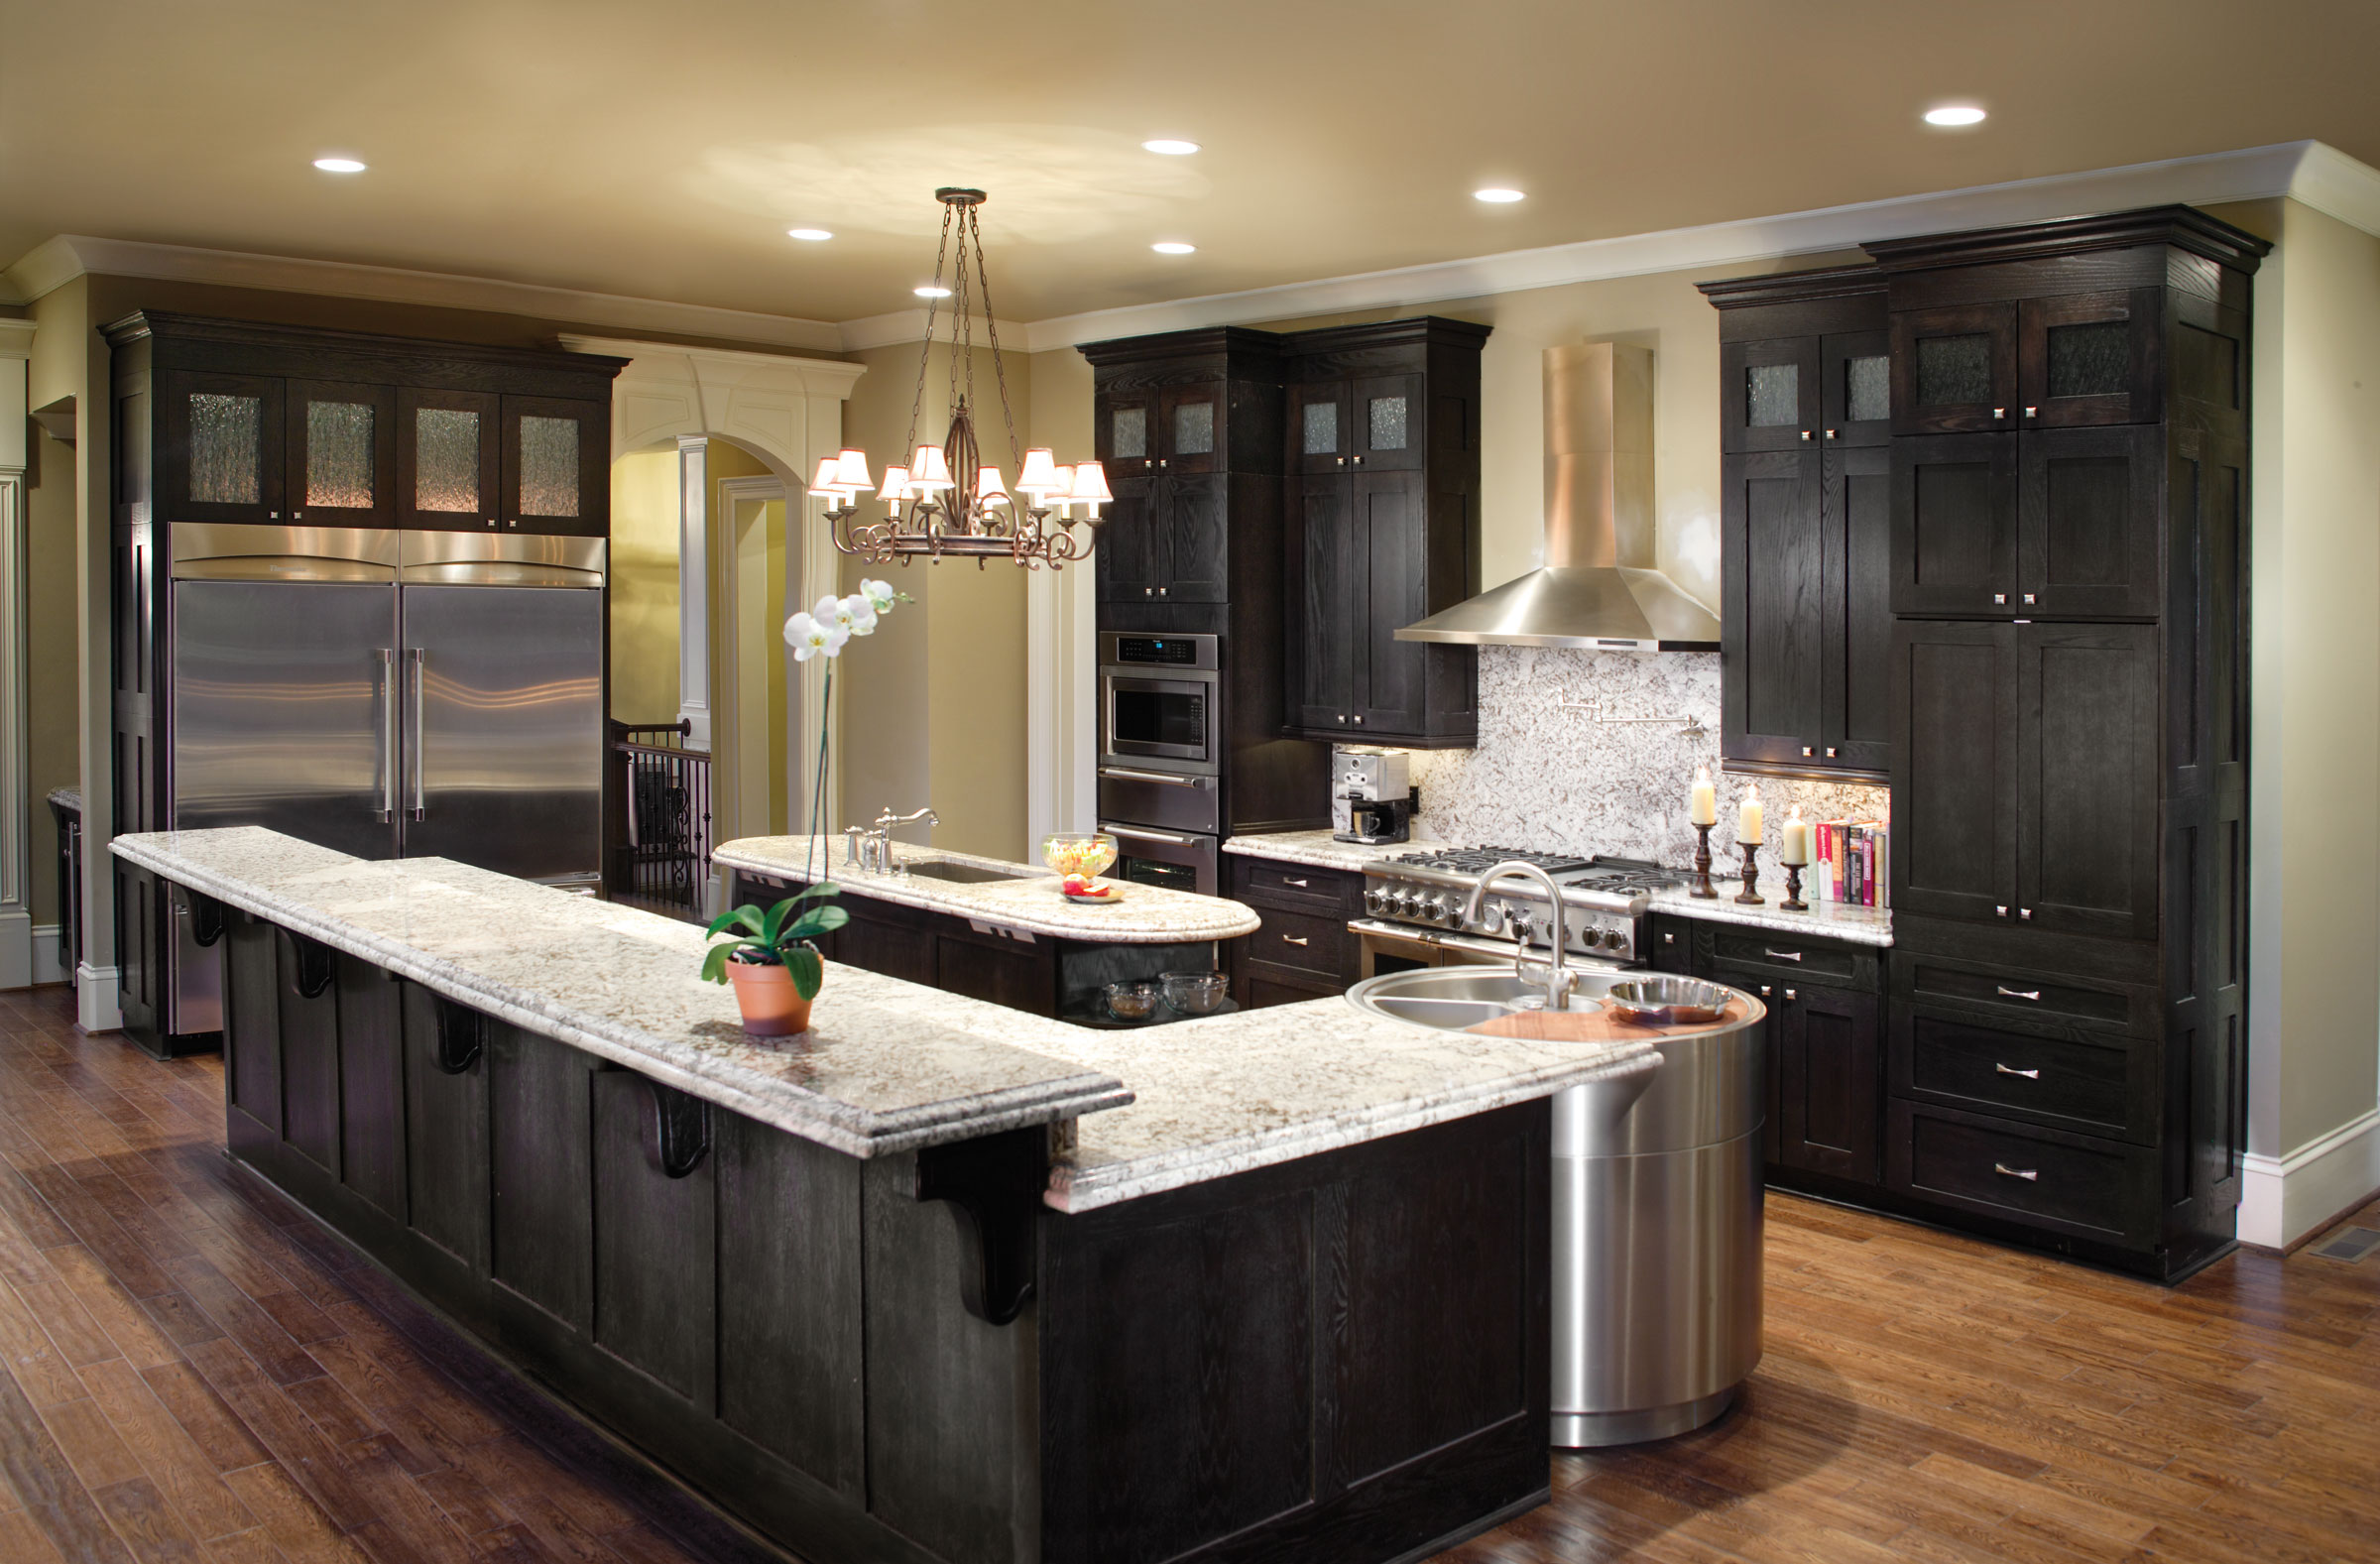 Custom Kitchen & Bathroom Cabinets pany in Phoenix AZ